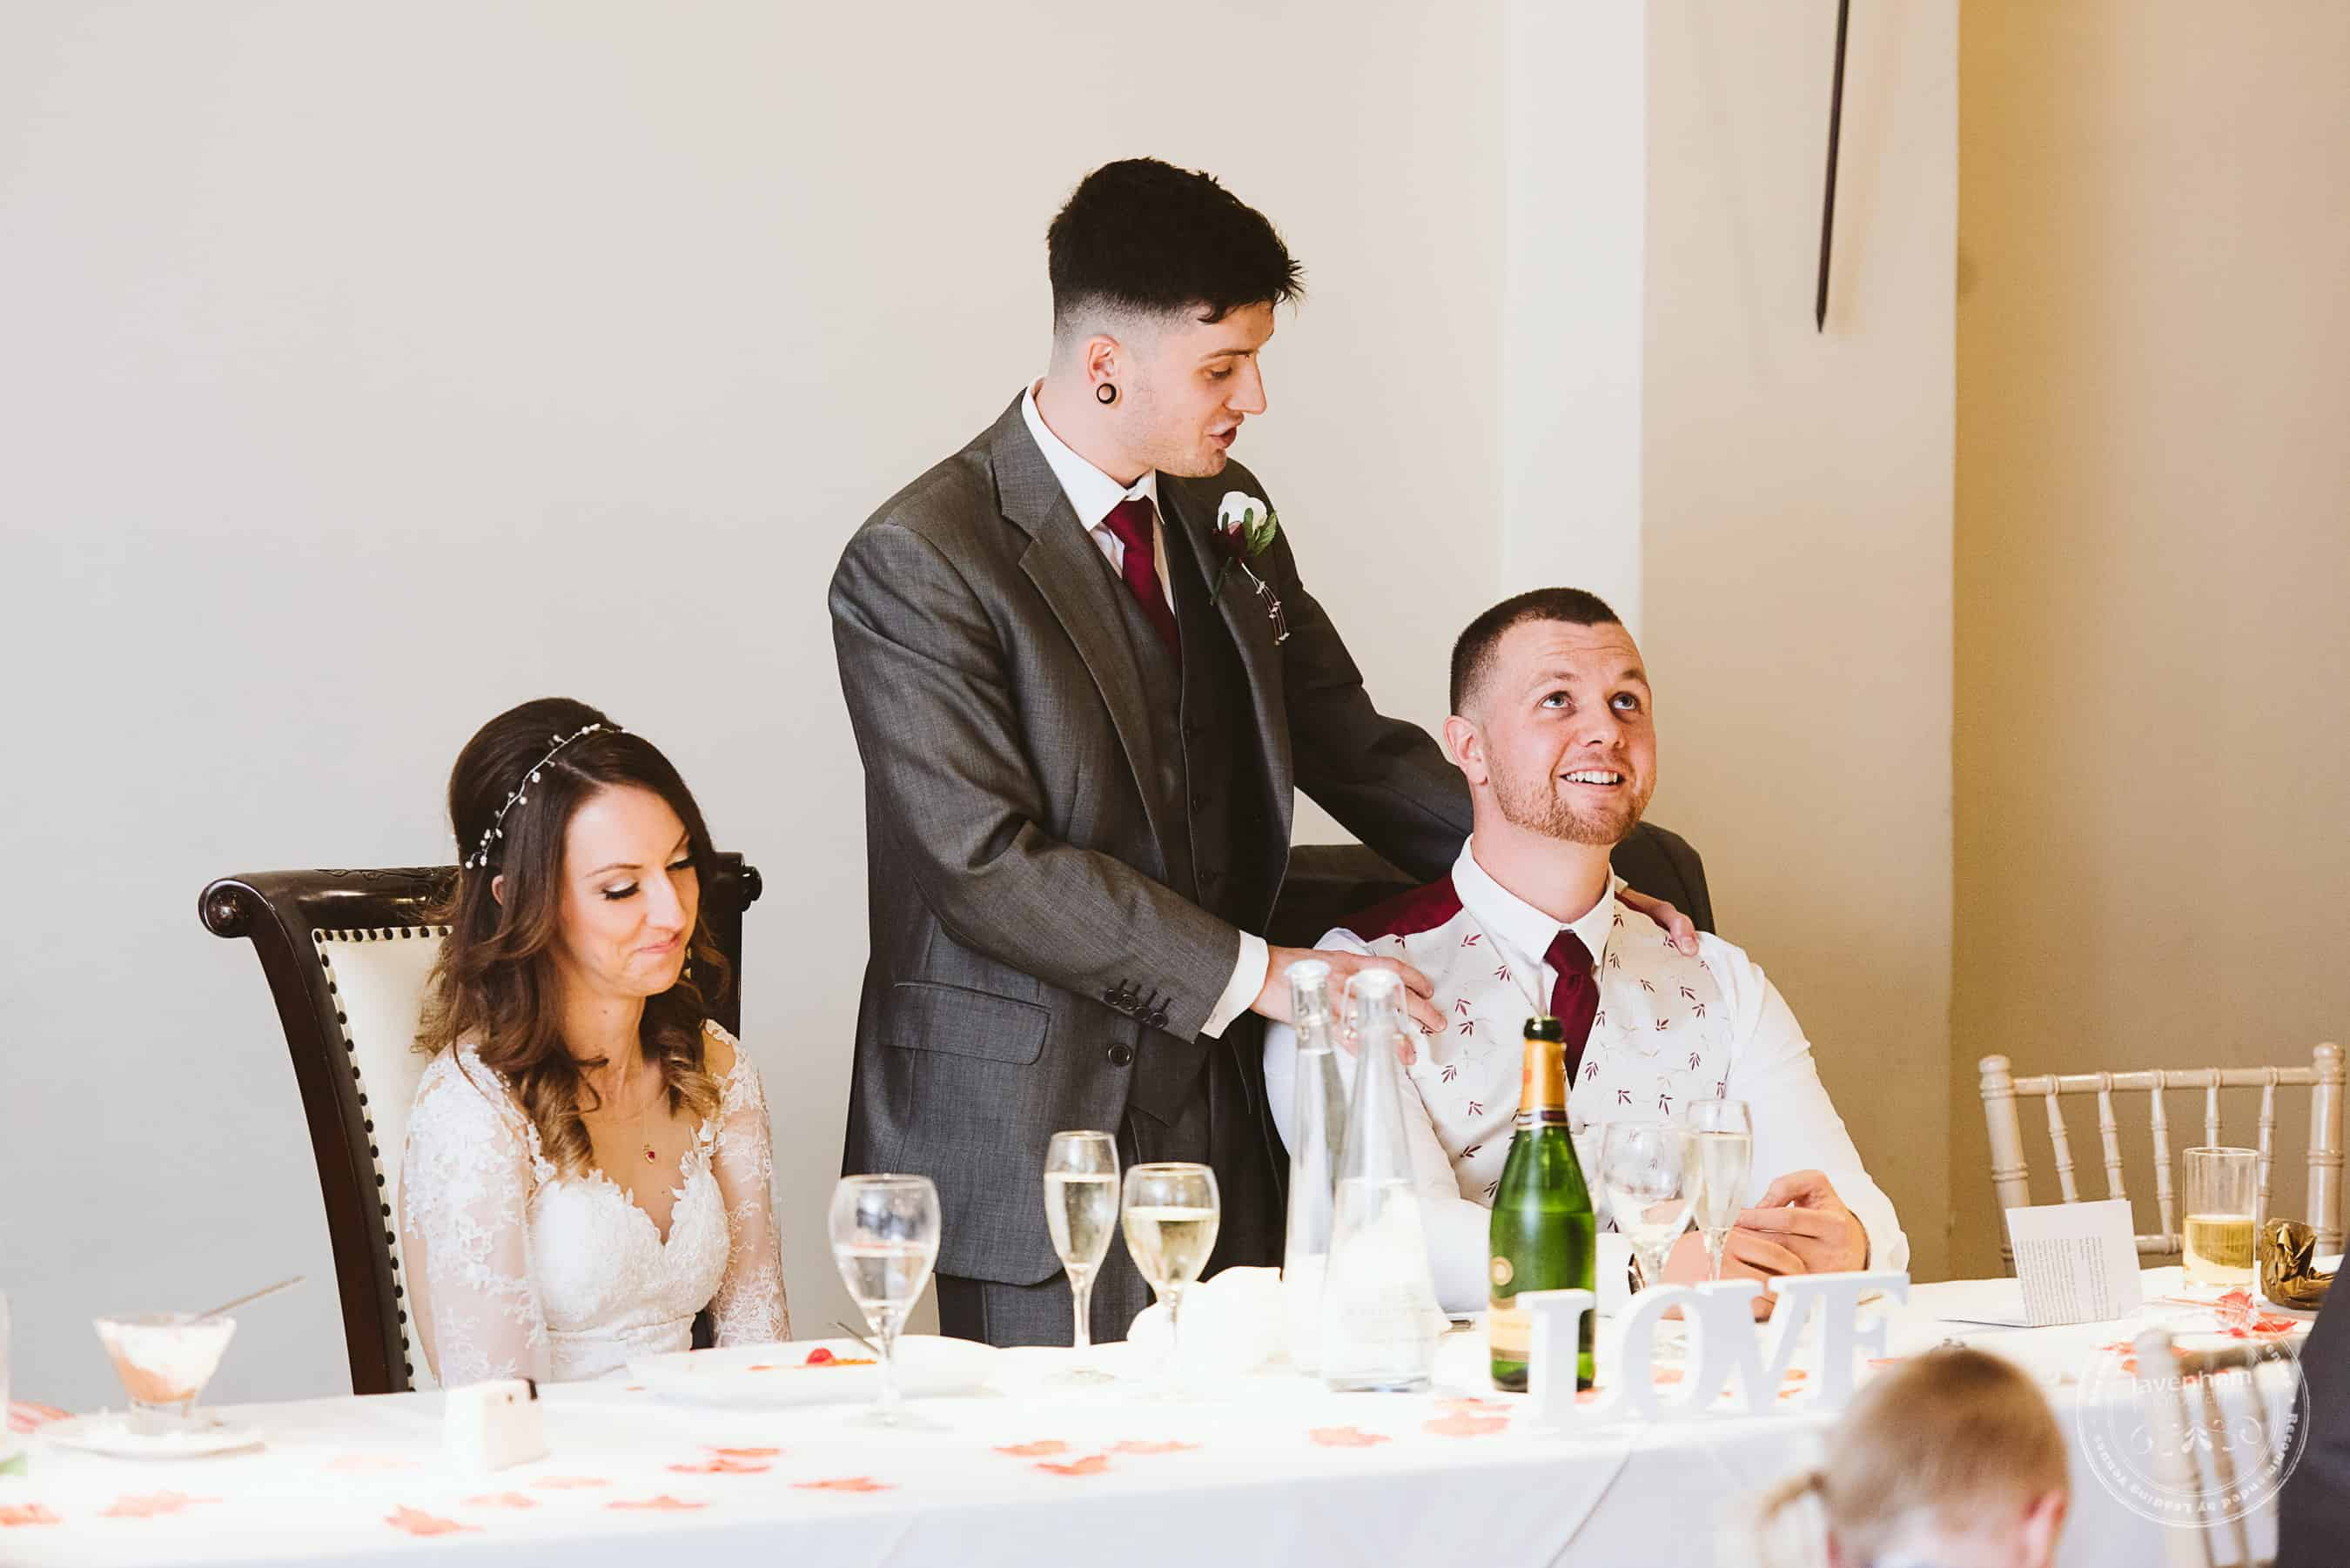 041118 Woodhall Manor Wedding Photography by Lavenham Photographic 109